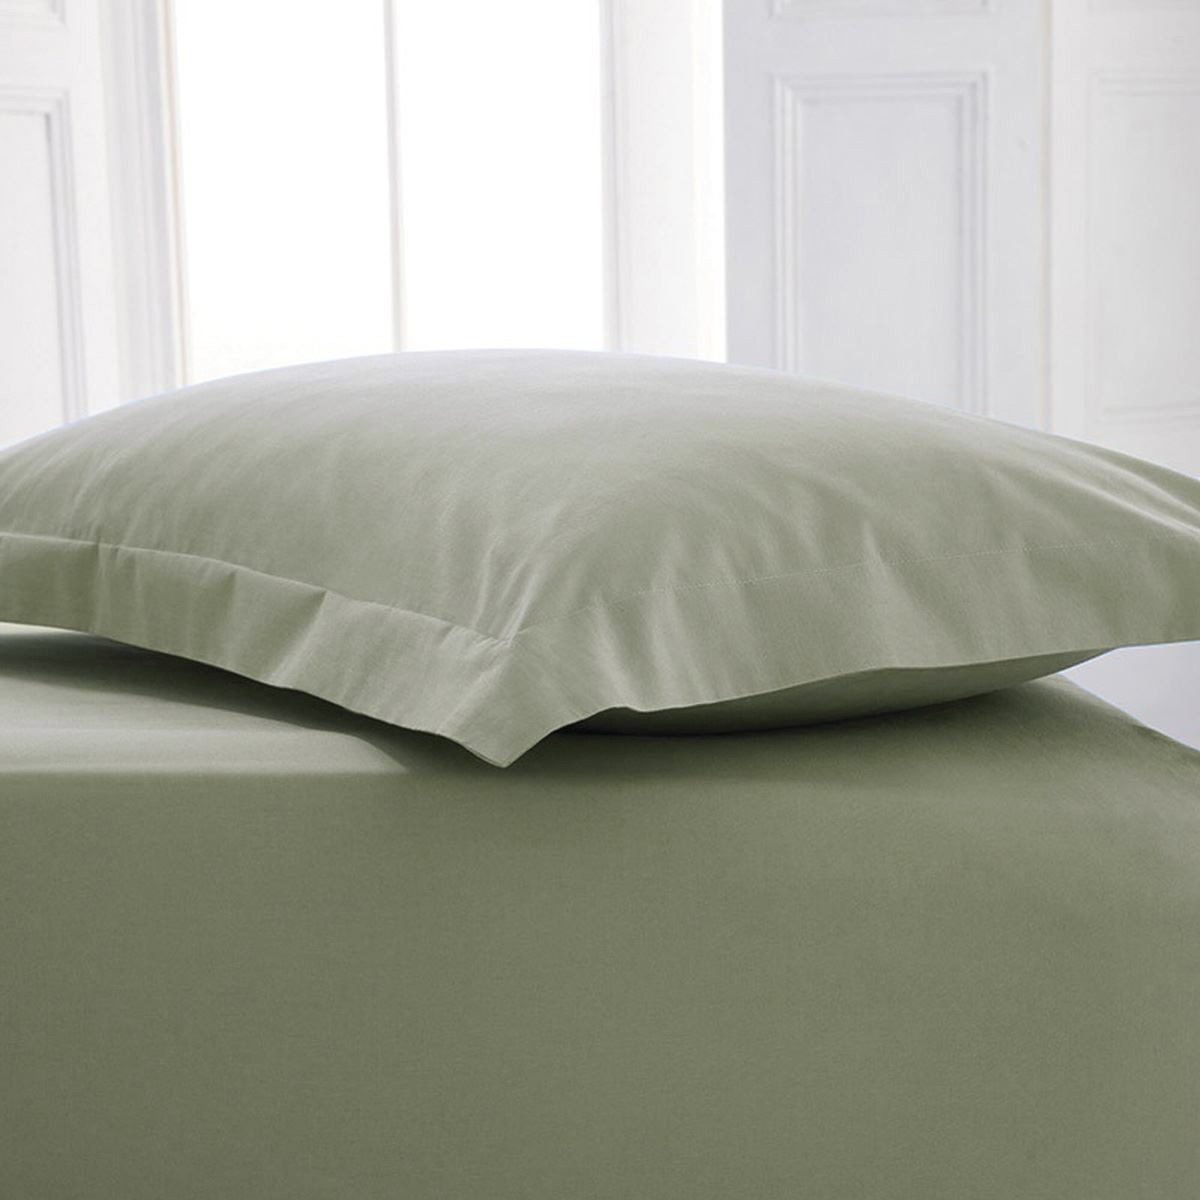 Extra Deep 16 Inch Percale Fitted Bed Sheet Bed Linen; Picture 2 Of 2